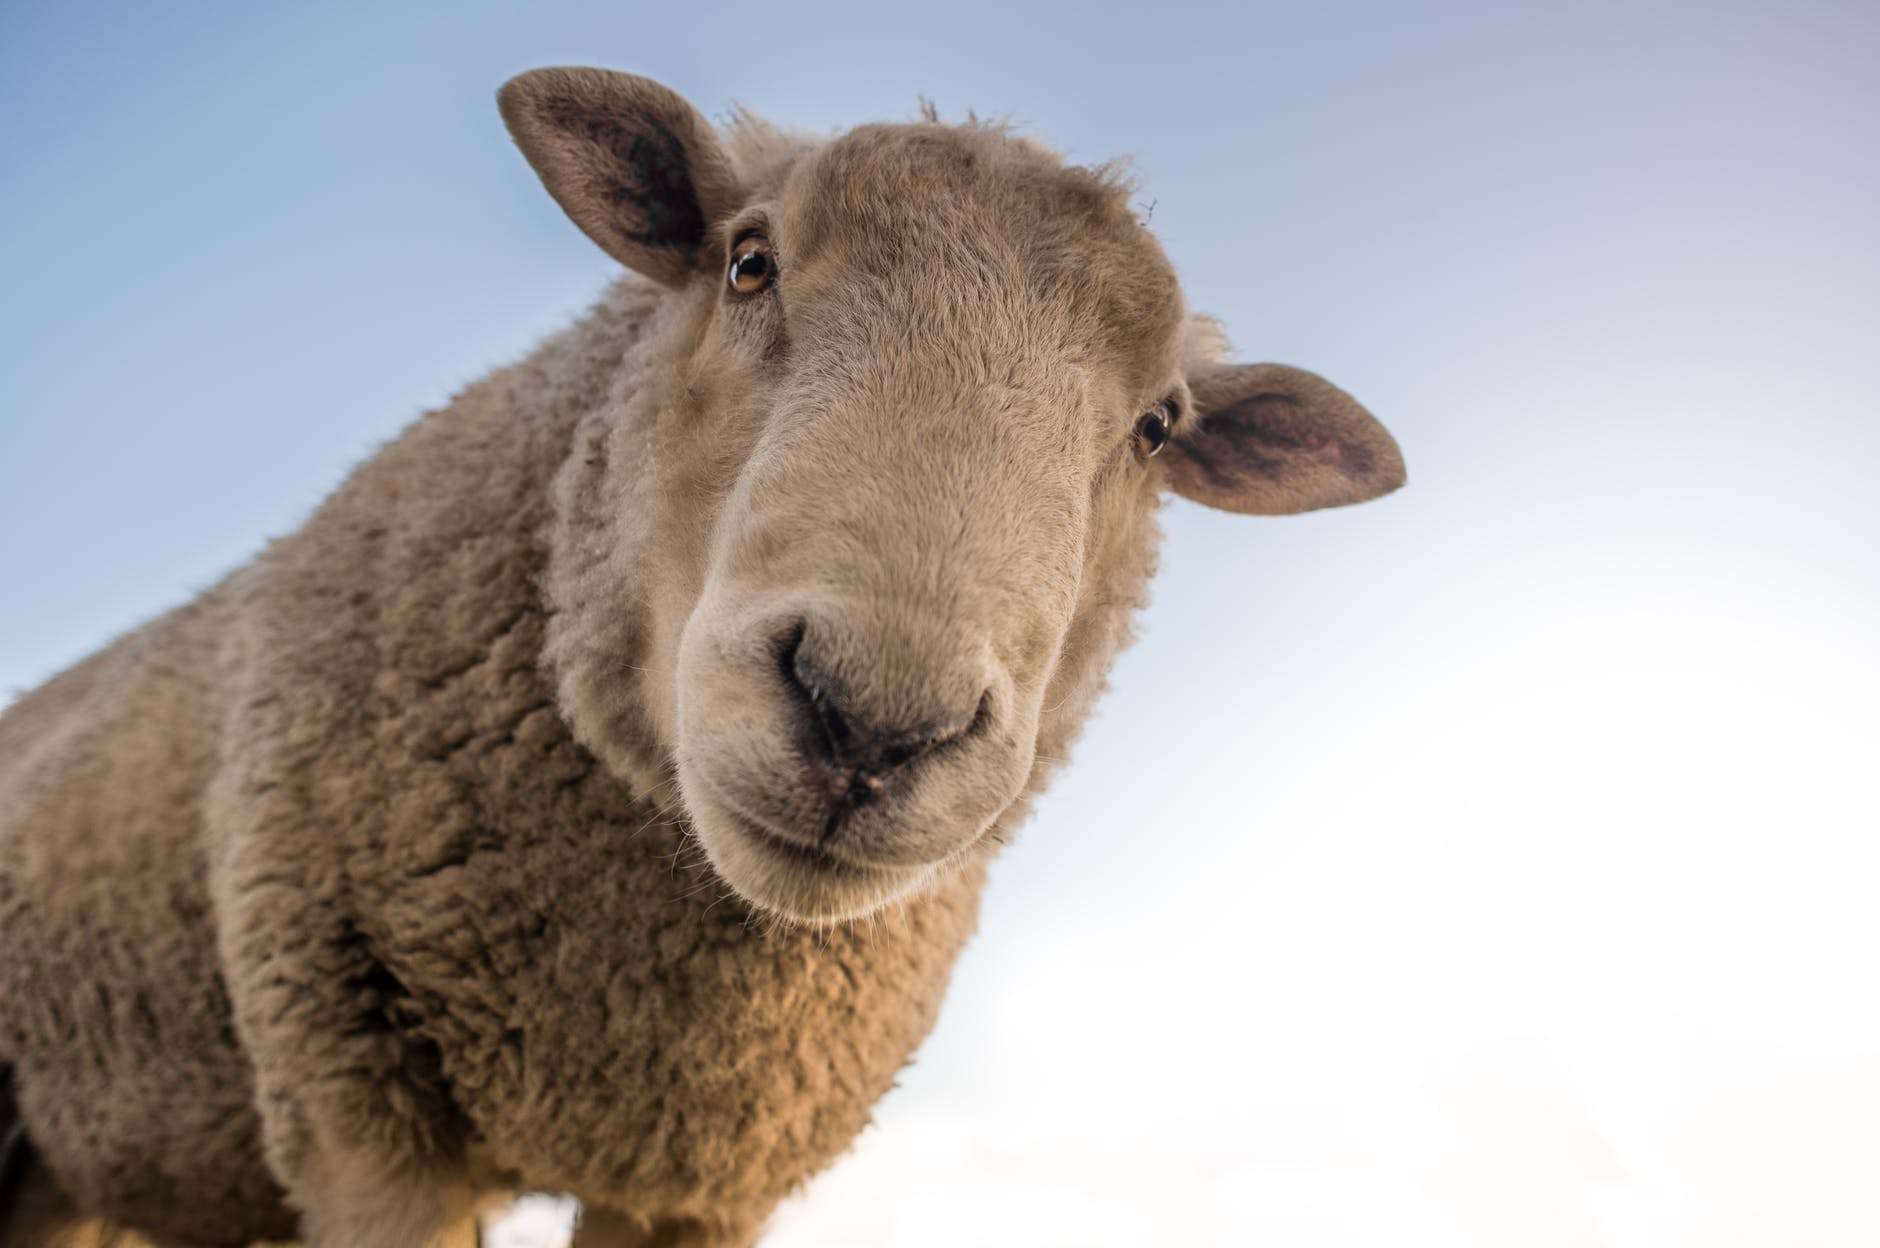 focus photo of brown sheep under blue sky